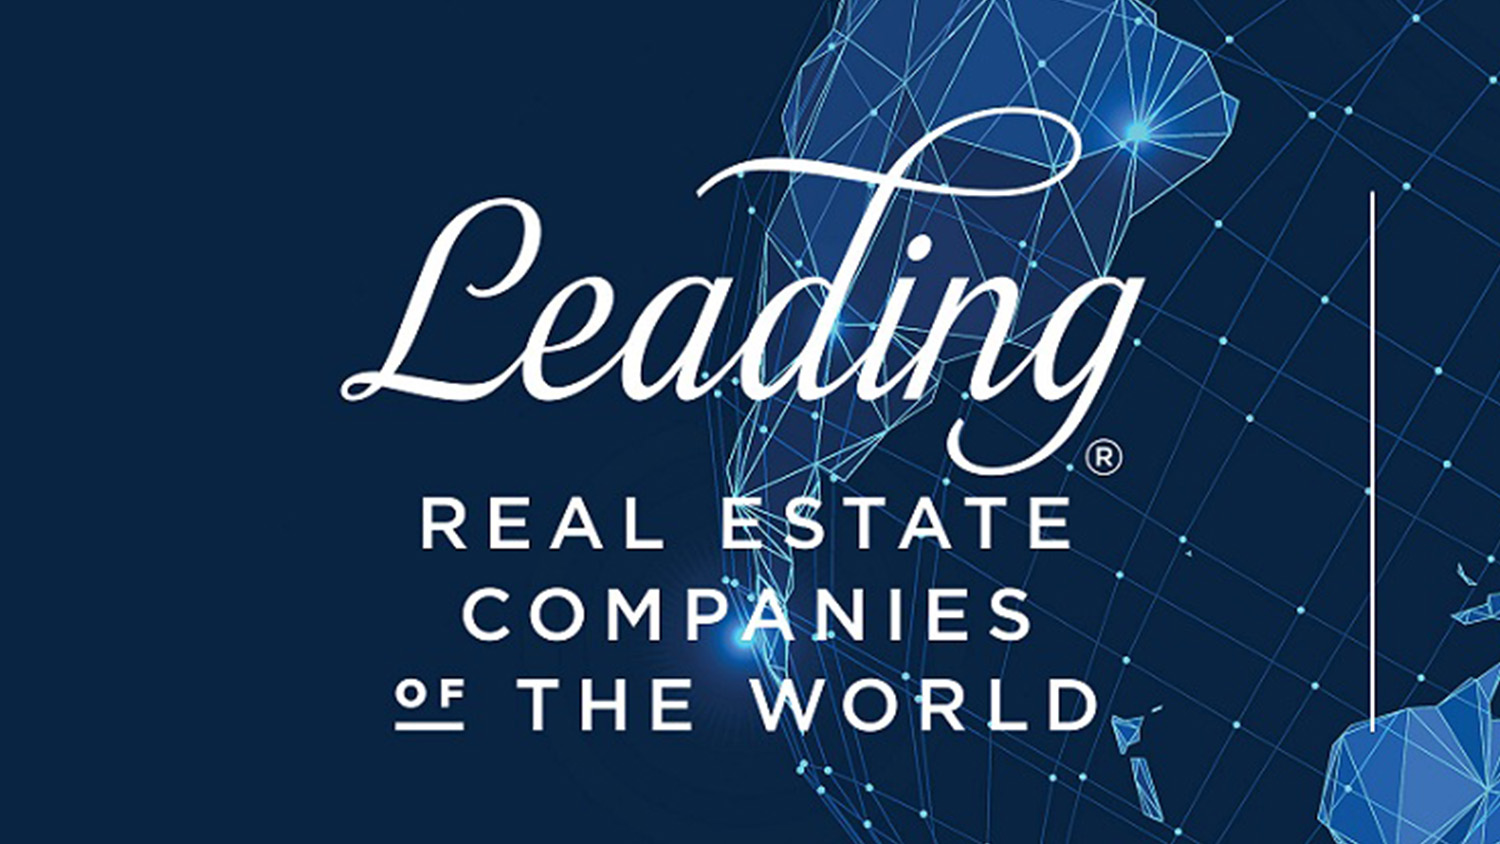 Pinnacle joins Leading Real Estate Companies of the World®